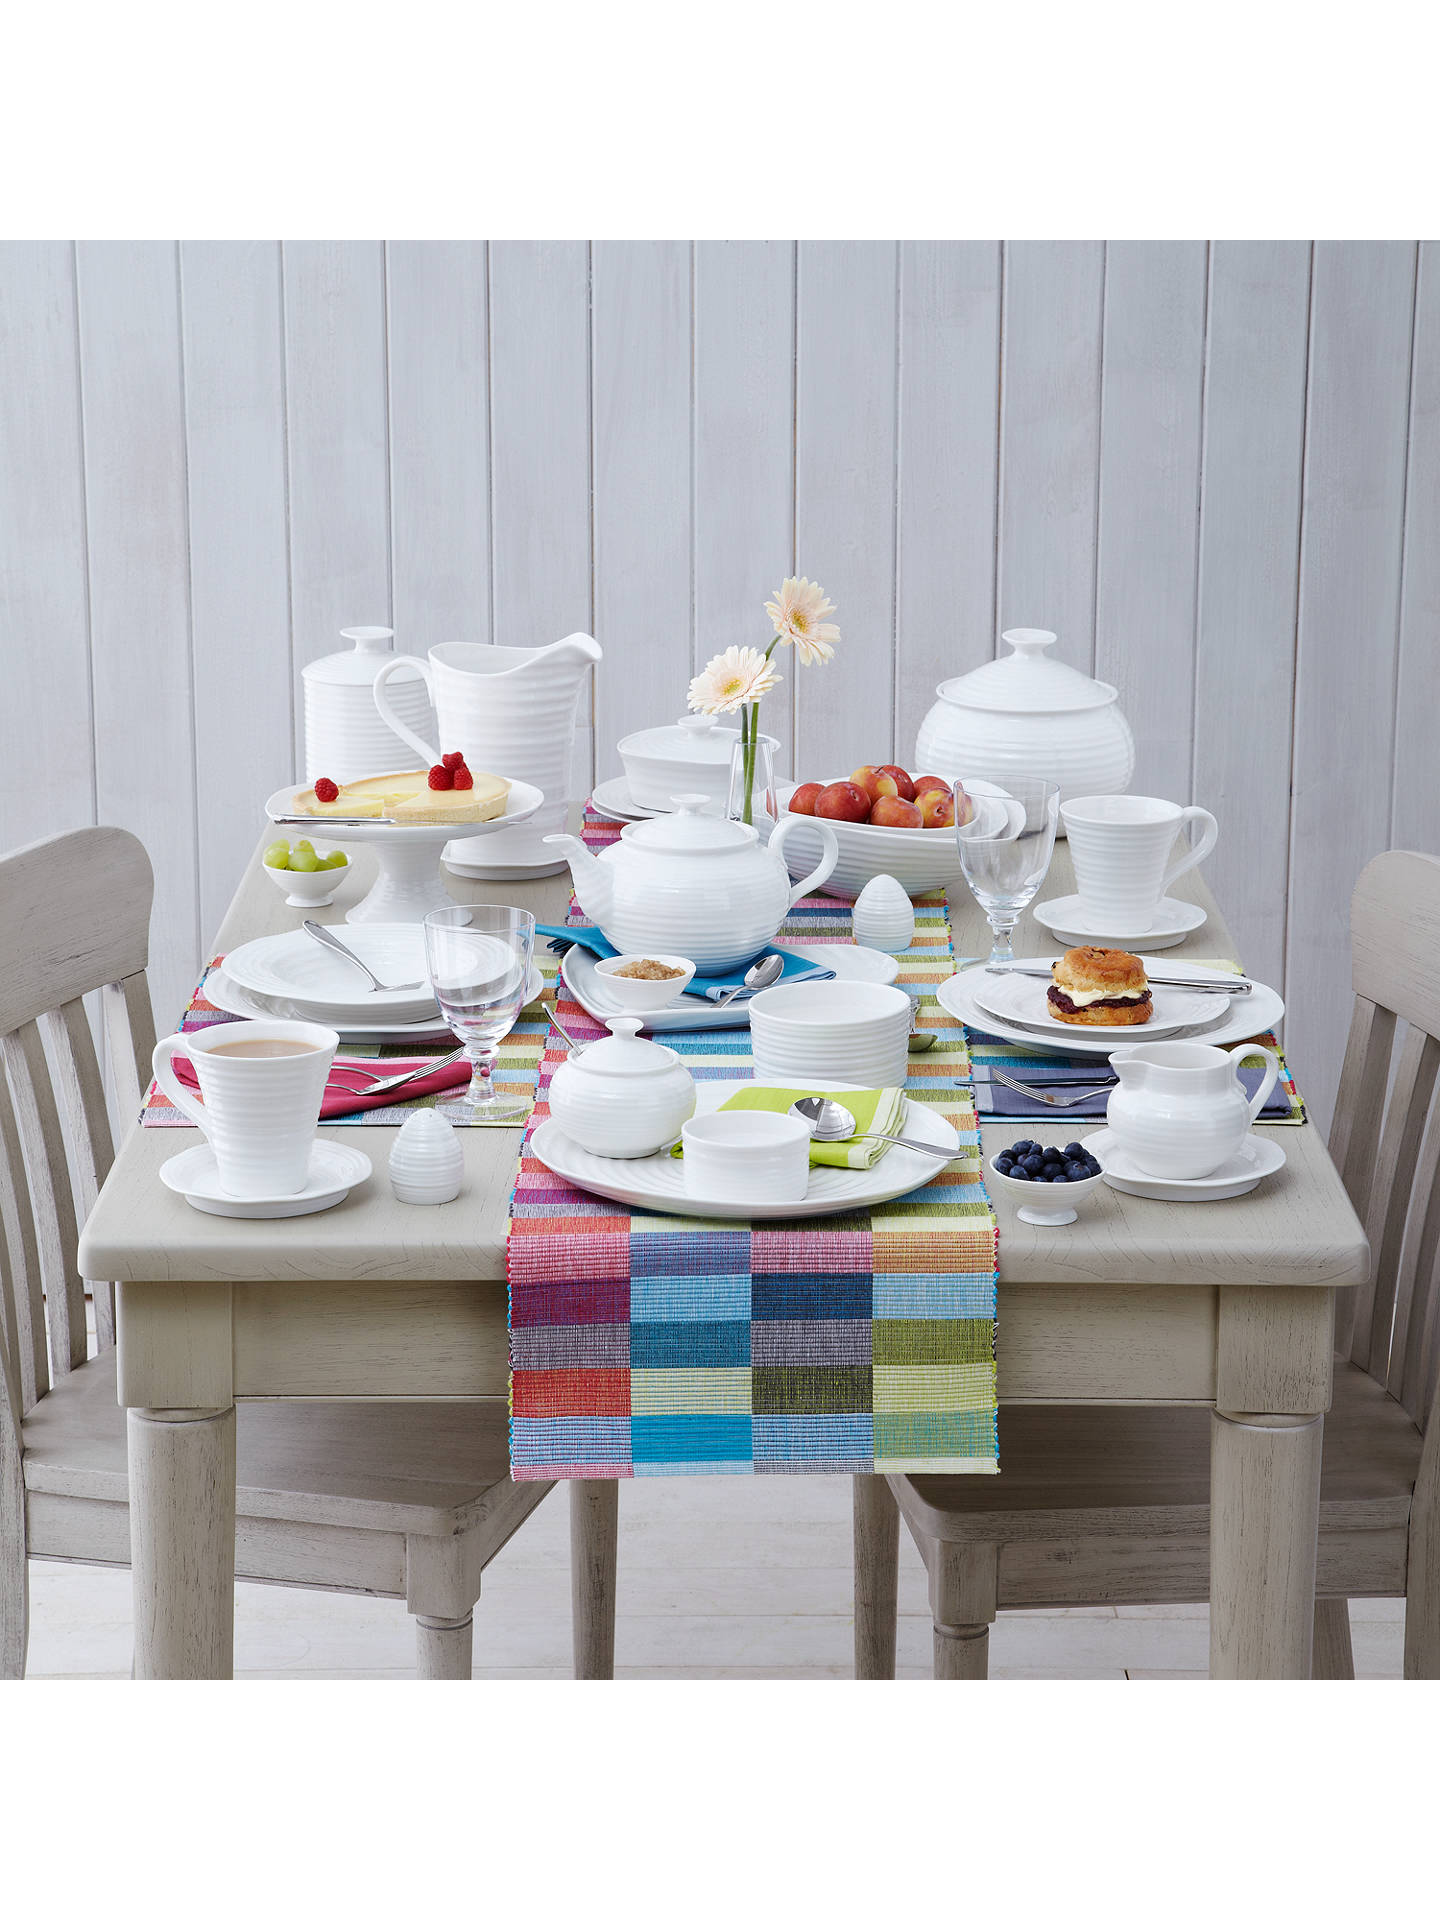 Buy Sophie Conran for Portmeirion Cereal Bowl, 19cm, White Online at johnlewis.com